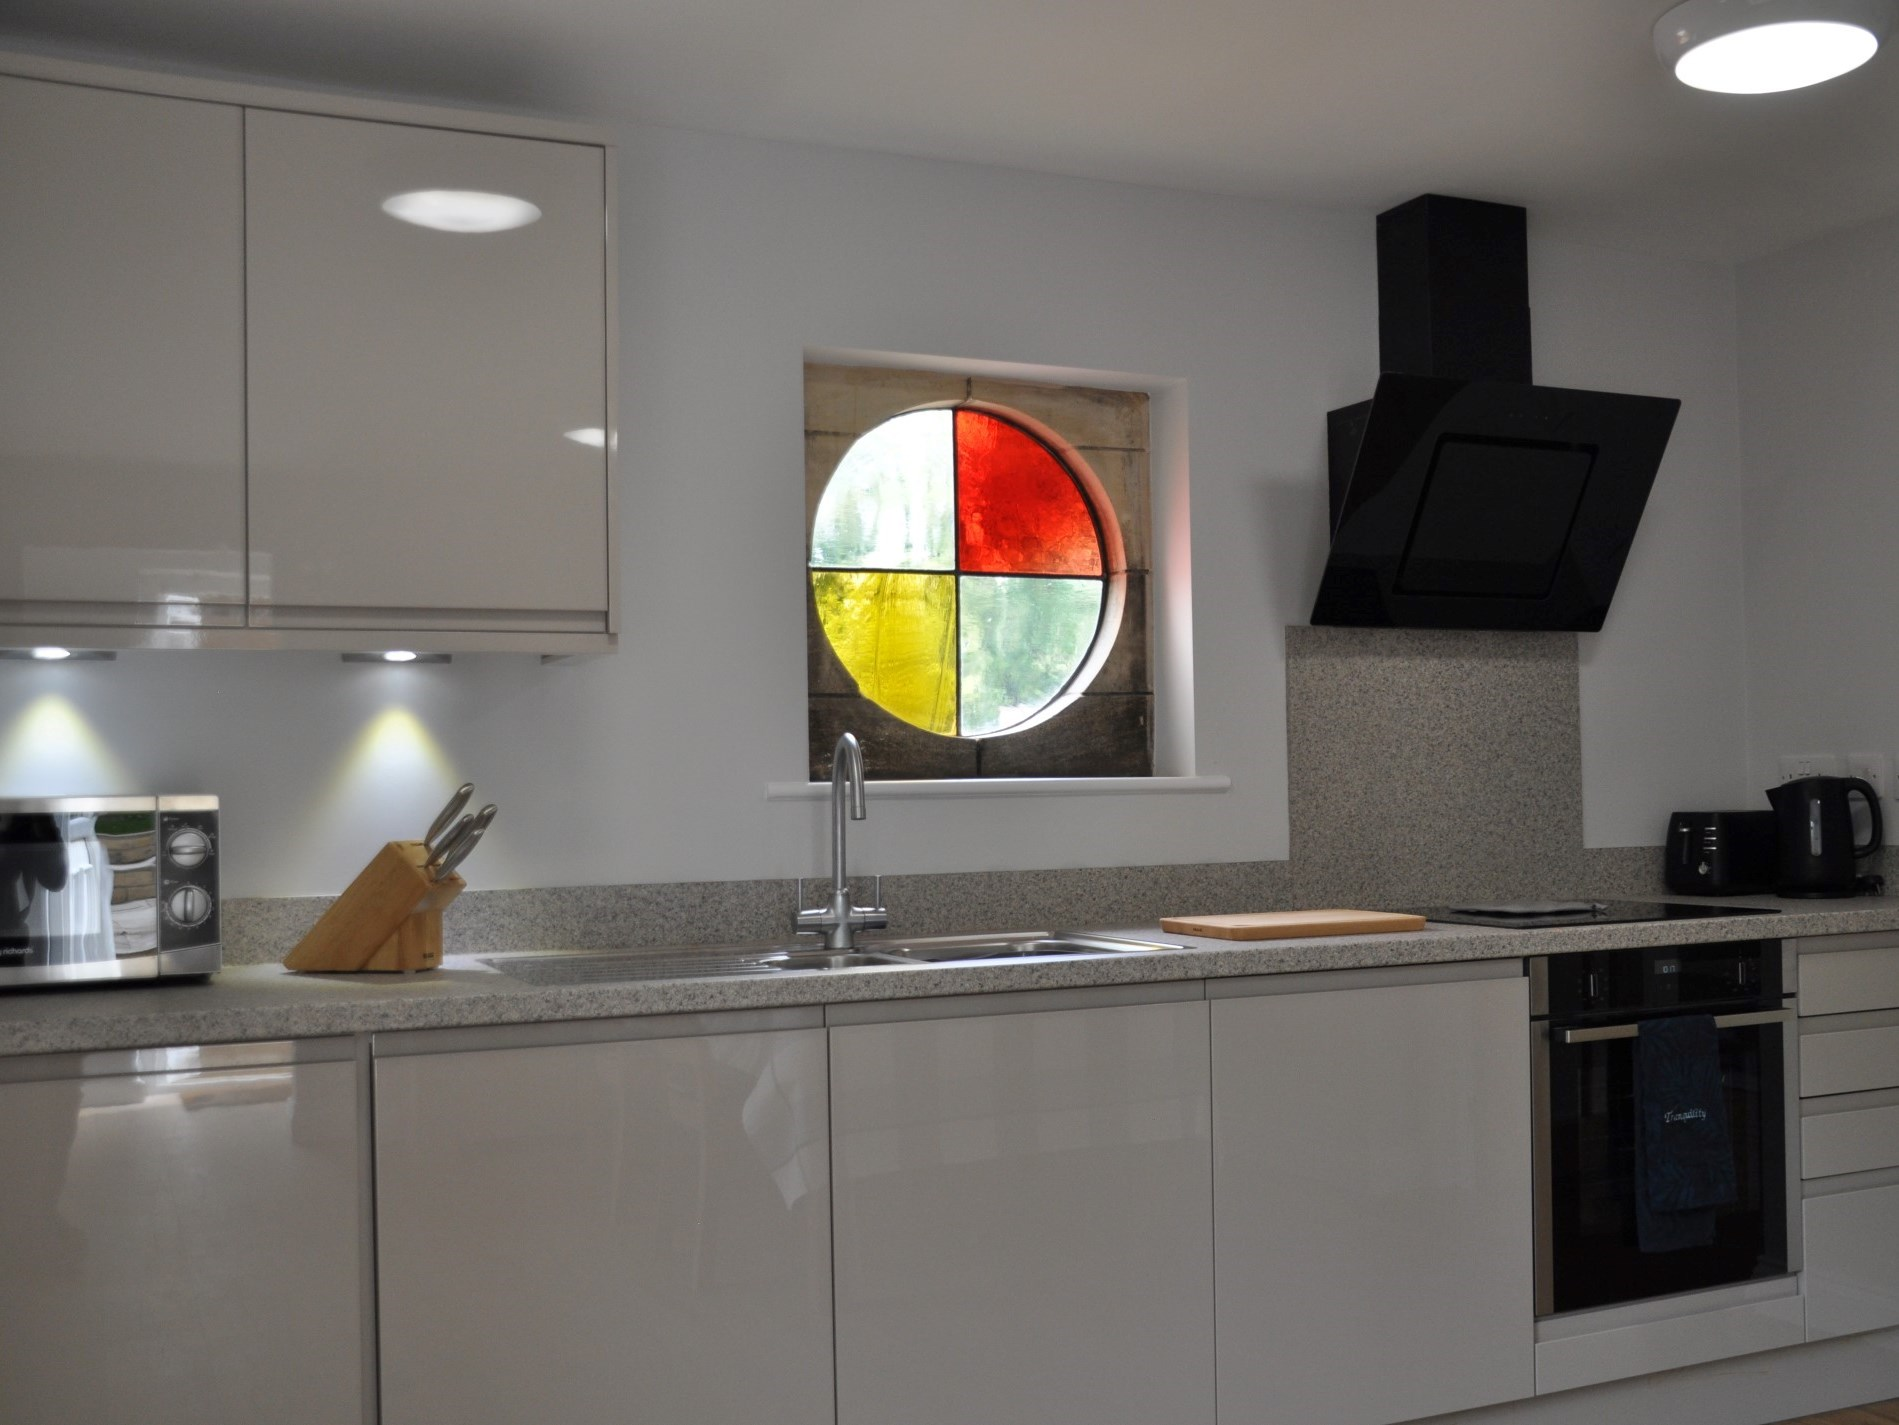 The kitchen is chic and well-equipped